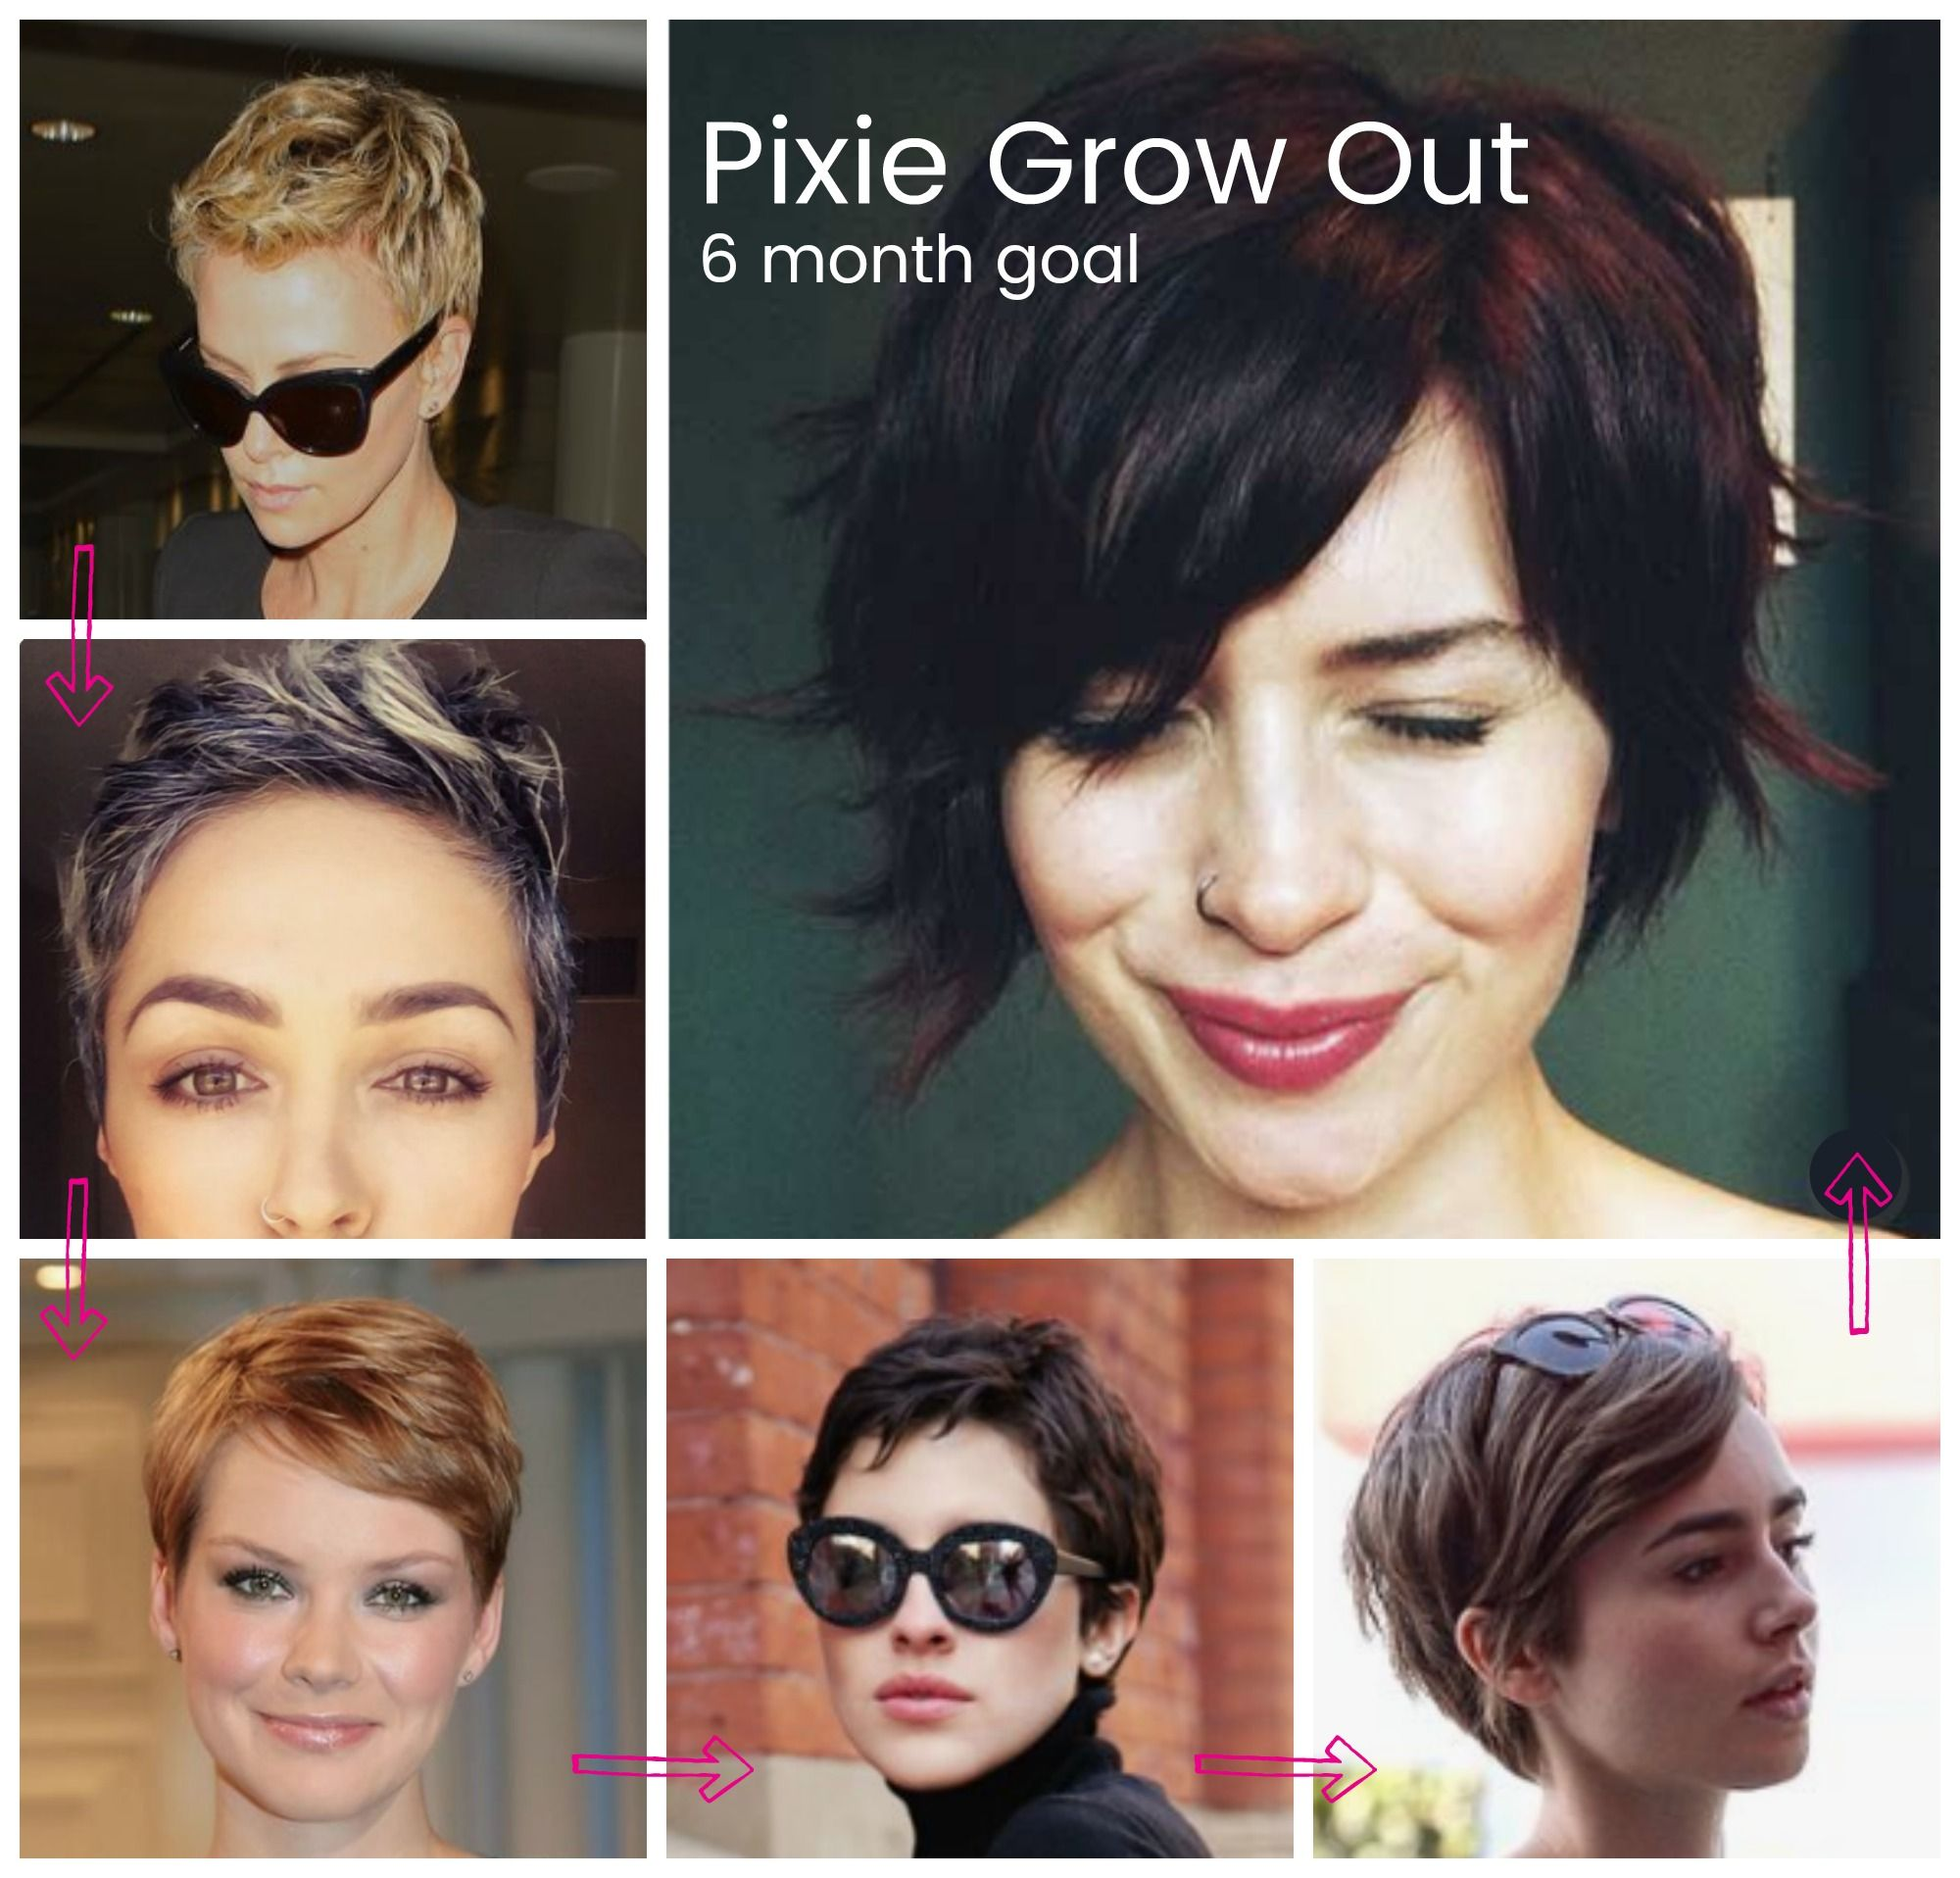 Grow Out Pixie How To Grow Out A Pixie Pixie Grow Out Pixie Grow Out Goals Growing Out Hair Growing Out Short Hair Styles Cute Hairstyles For Short Hair